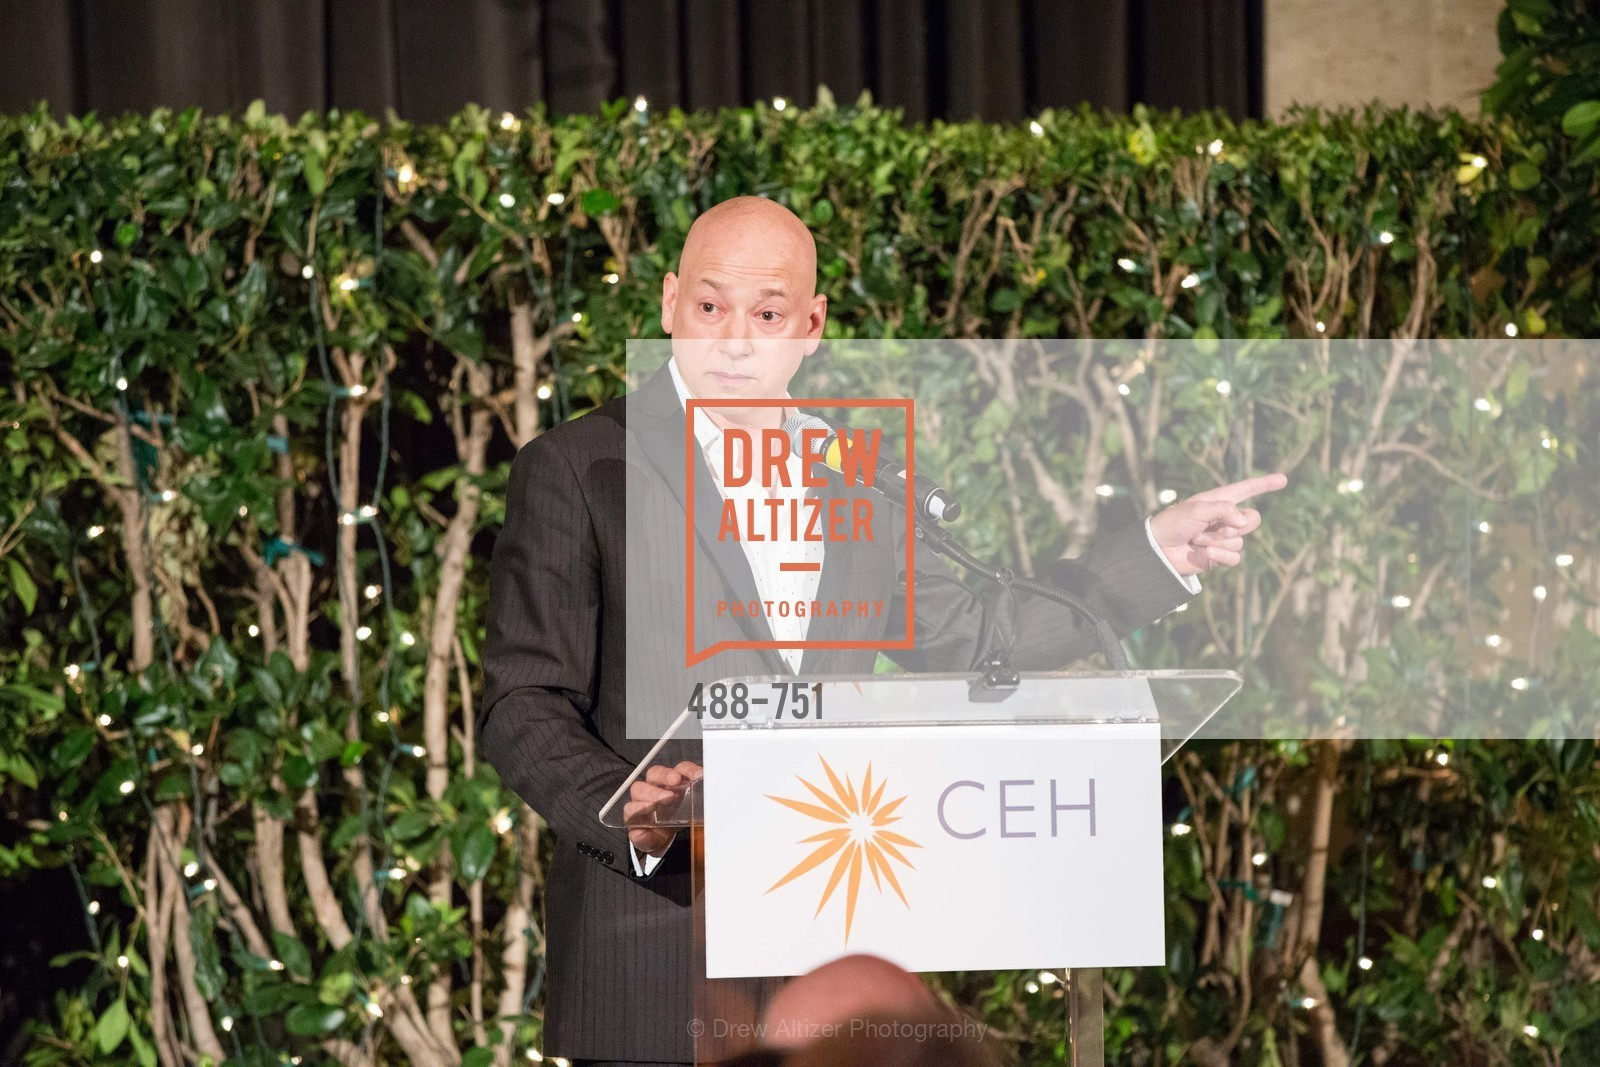 Evan Handler, CENTER FOR ENVIRONMENTAL HEALTH (CEH) 2015 Gala, US, May 28th, 2015,Drew Altizer, Drew Altizer Photography, full-service agency, private events, San Francisco photographer, photographer california